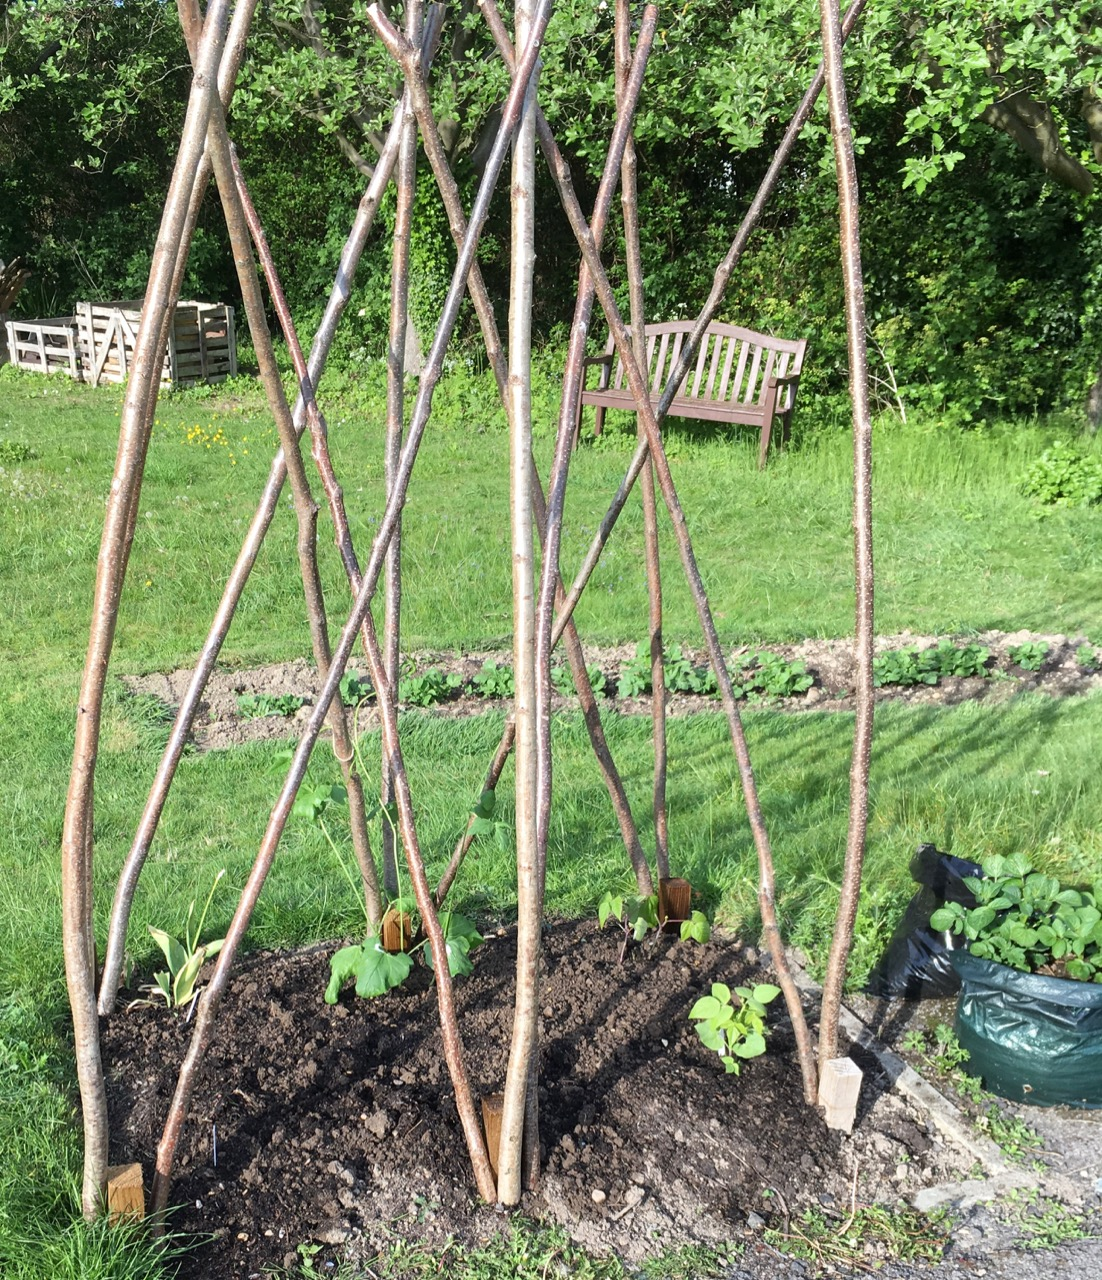 We are trying out some 'shelling beans' this year, growing up our super-tall wigwam. Some are Greek giganti beans and we are trying borlotto and some other spotty beans. We won't harvest the green pods for eating but let them dry and harvest them at the end of the season as beans inside dry pods. We will also have wigwams for runner and green beans in other places.